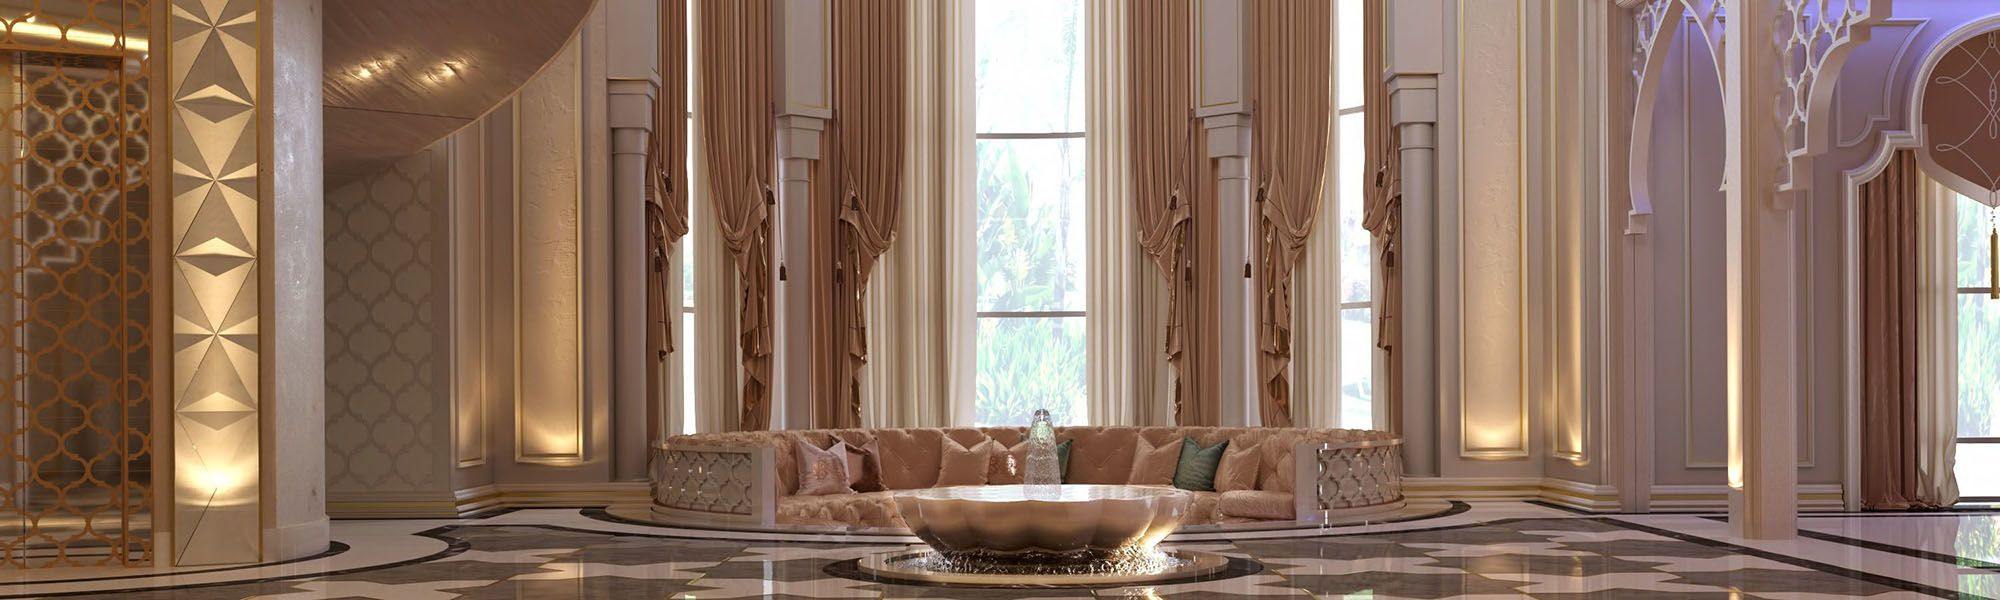 Luxury Moroccan interior design projects in Dubai